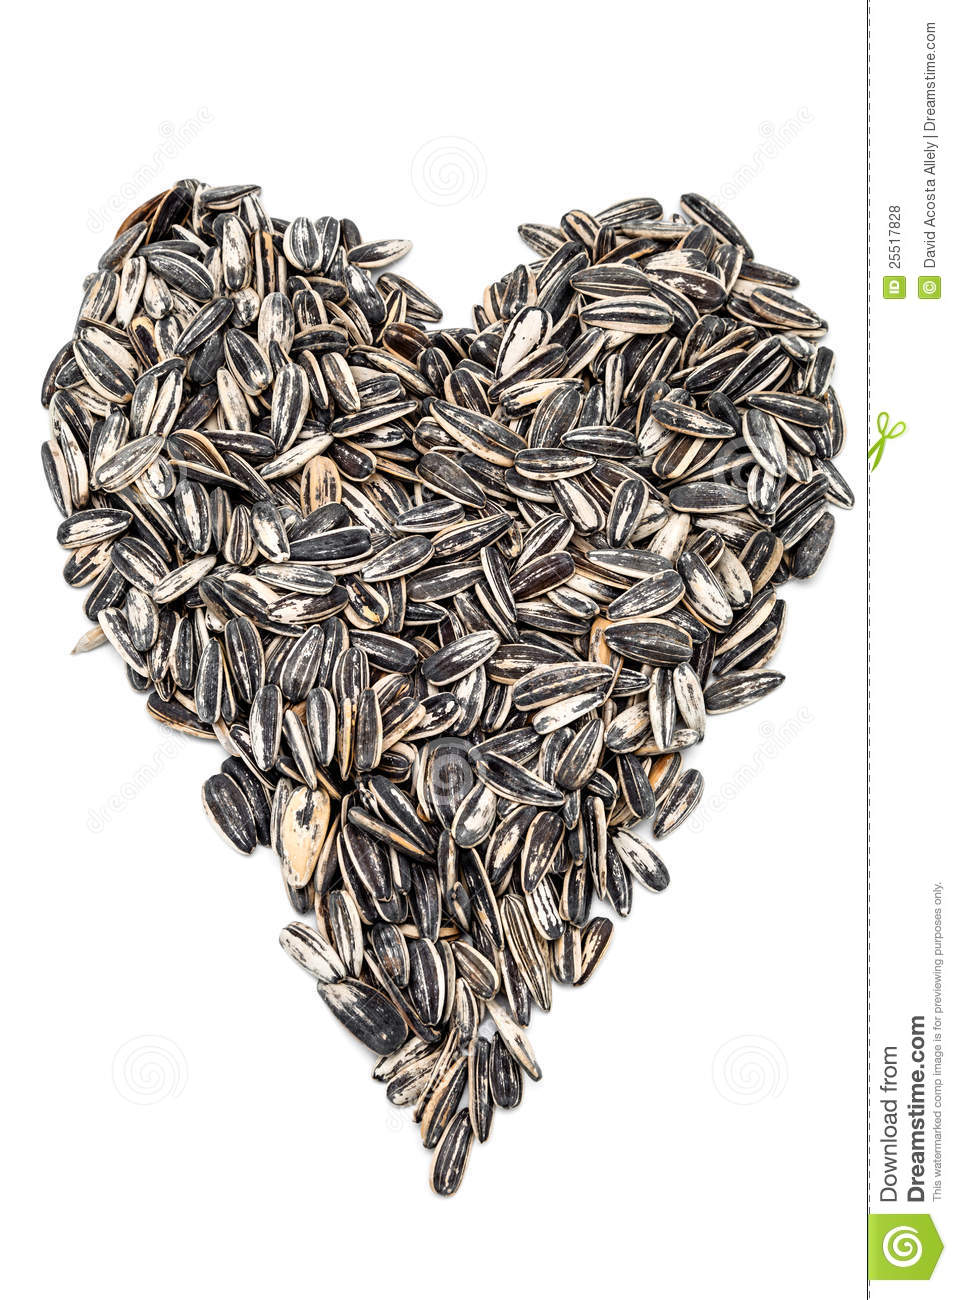 david sunflower seeds clipart - photo #39